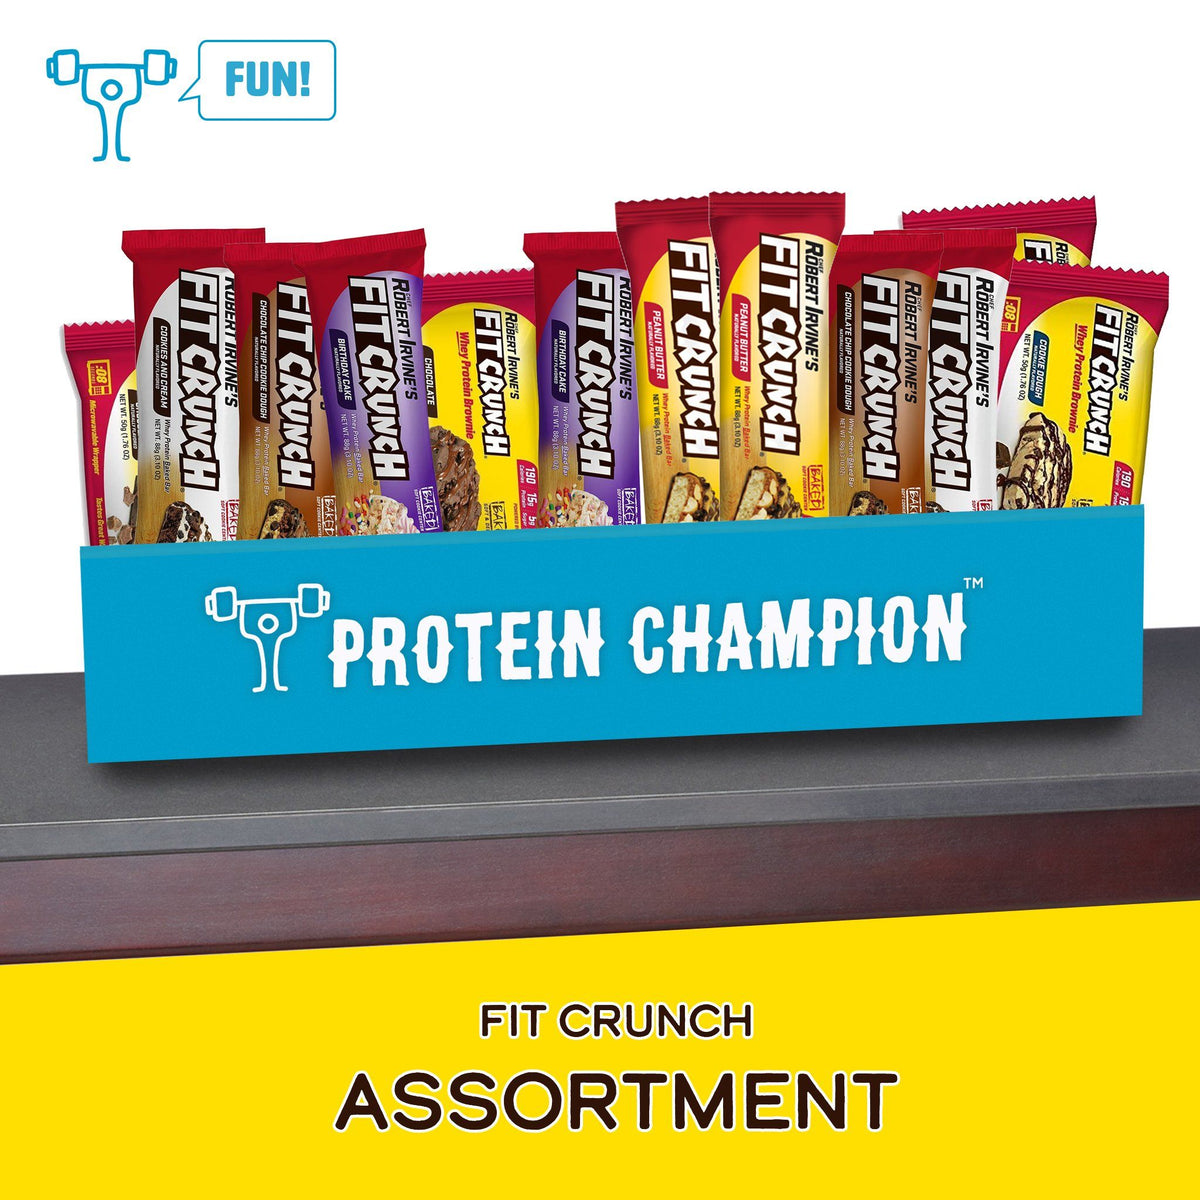 Protein Champion FIT CRUNCH Assortment Box Of Bars